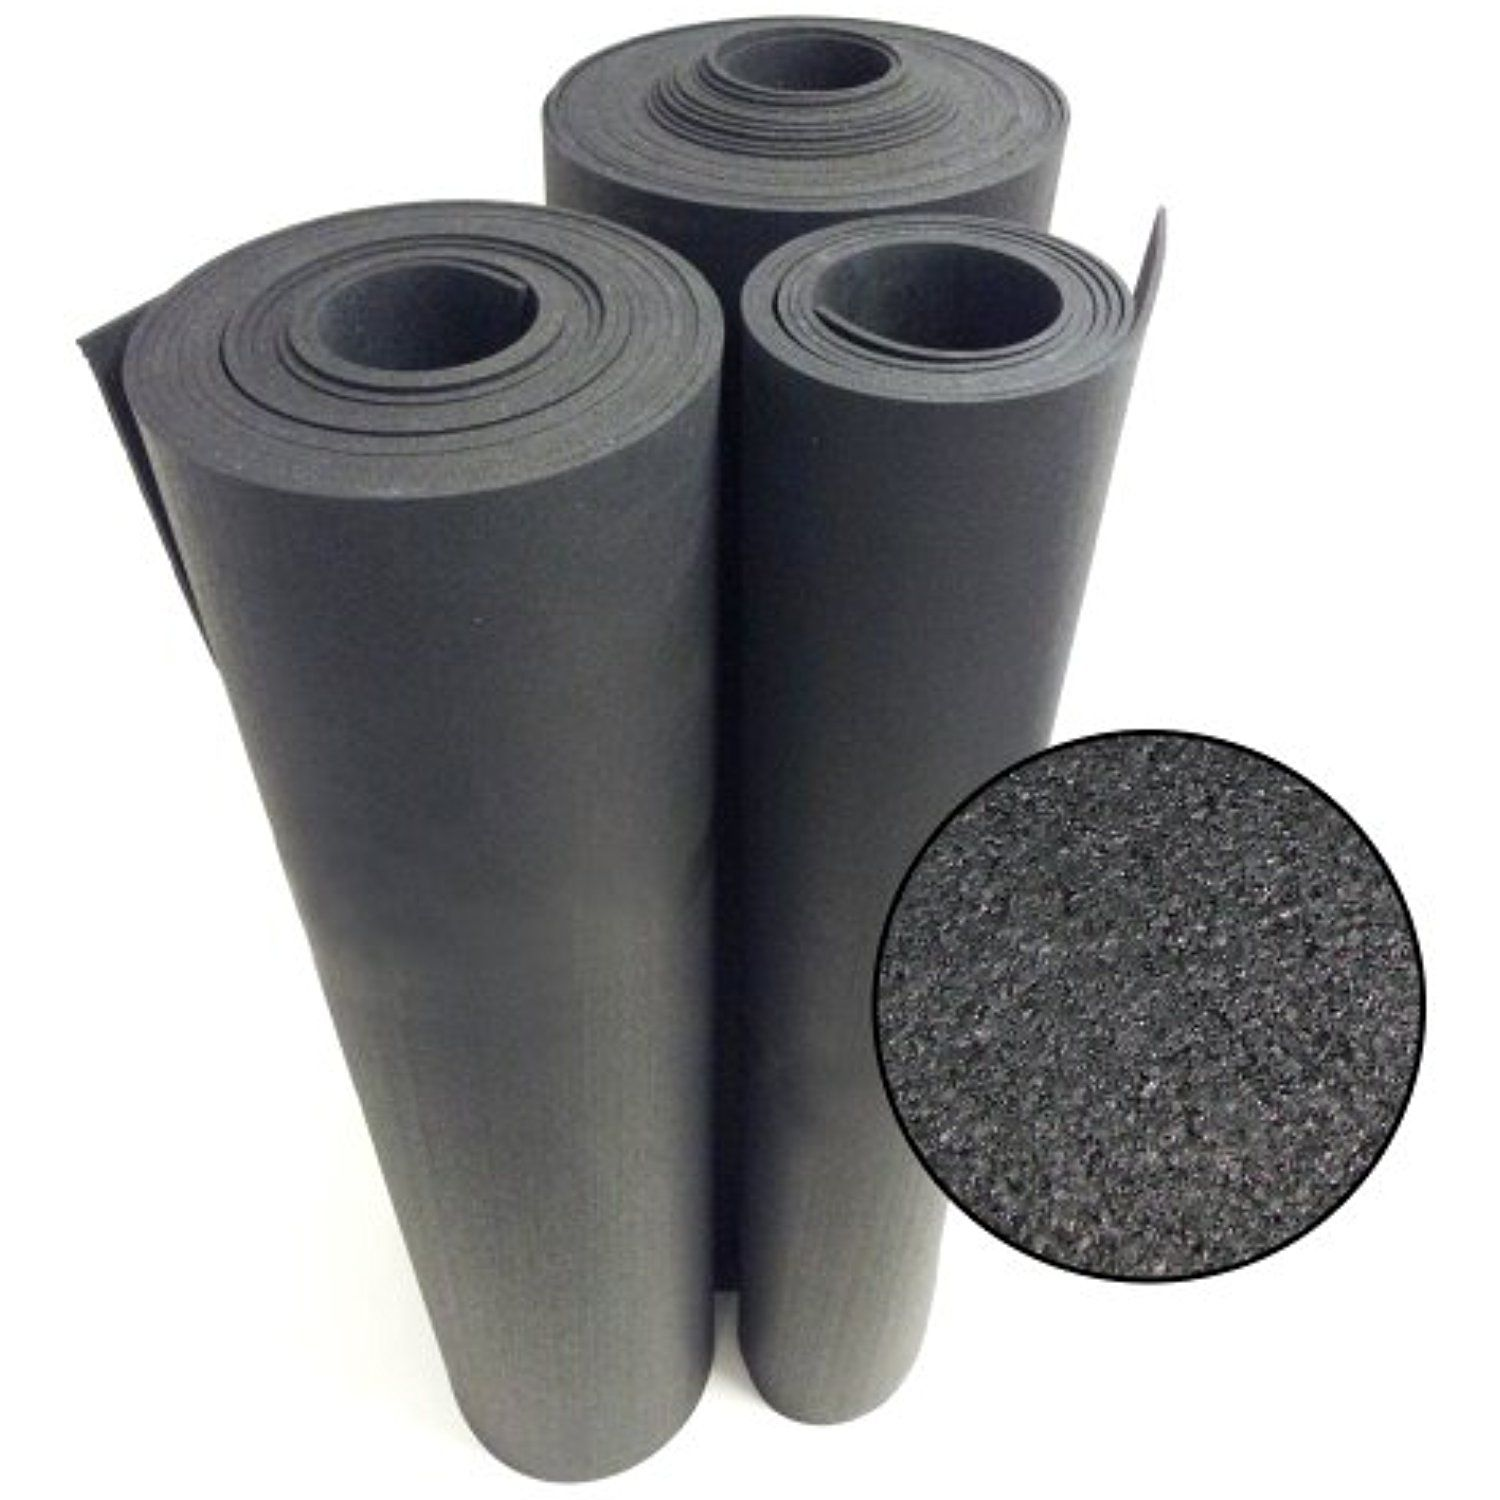 Rubber Cal Recycled Rubber Flooring 3 8 X 4ft X 2ft Rolls Black Rubber Floor Mat You Can Ge Rubber Flooring Rolled Rubber Flooring Rubber Floor Mats